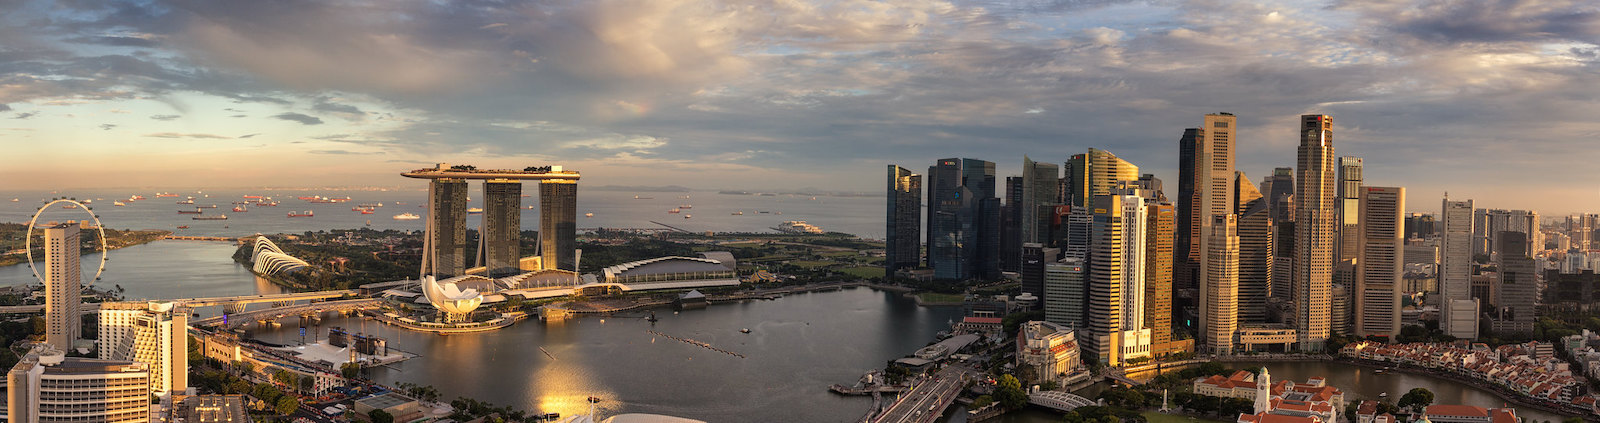 Marina Bay, Financial District and Singapore River